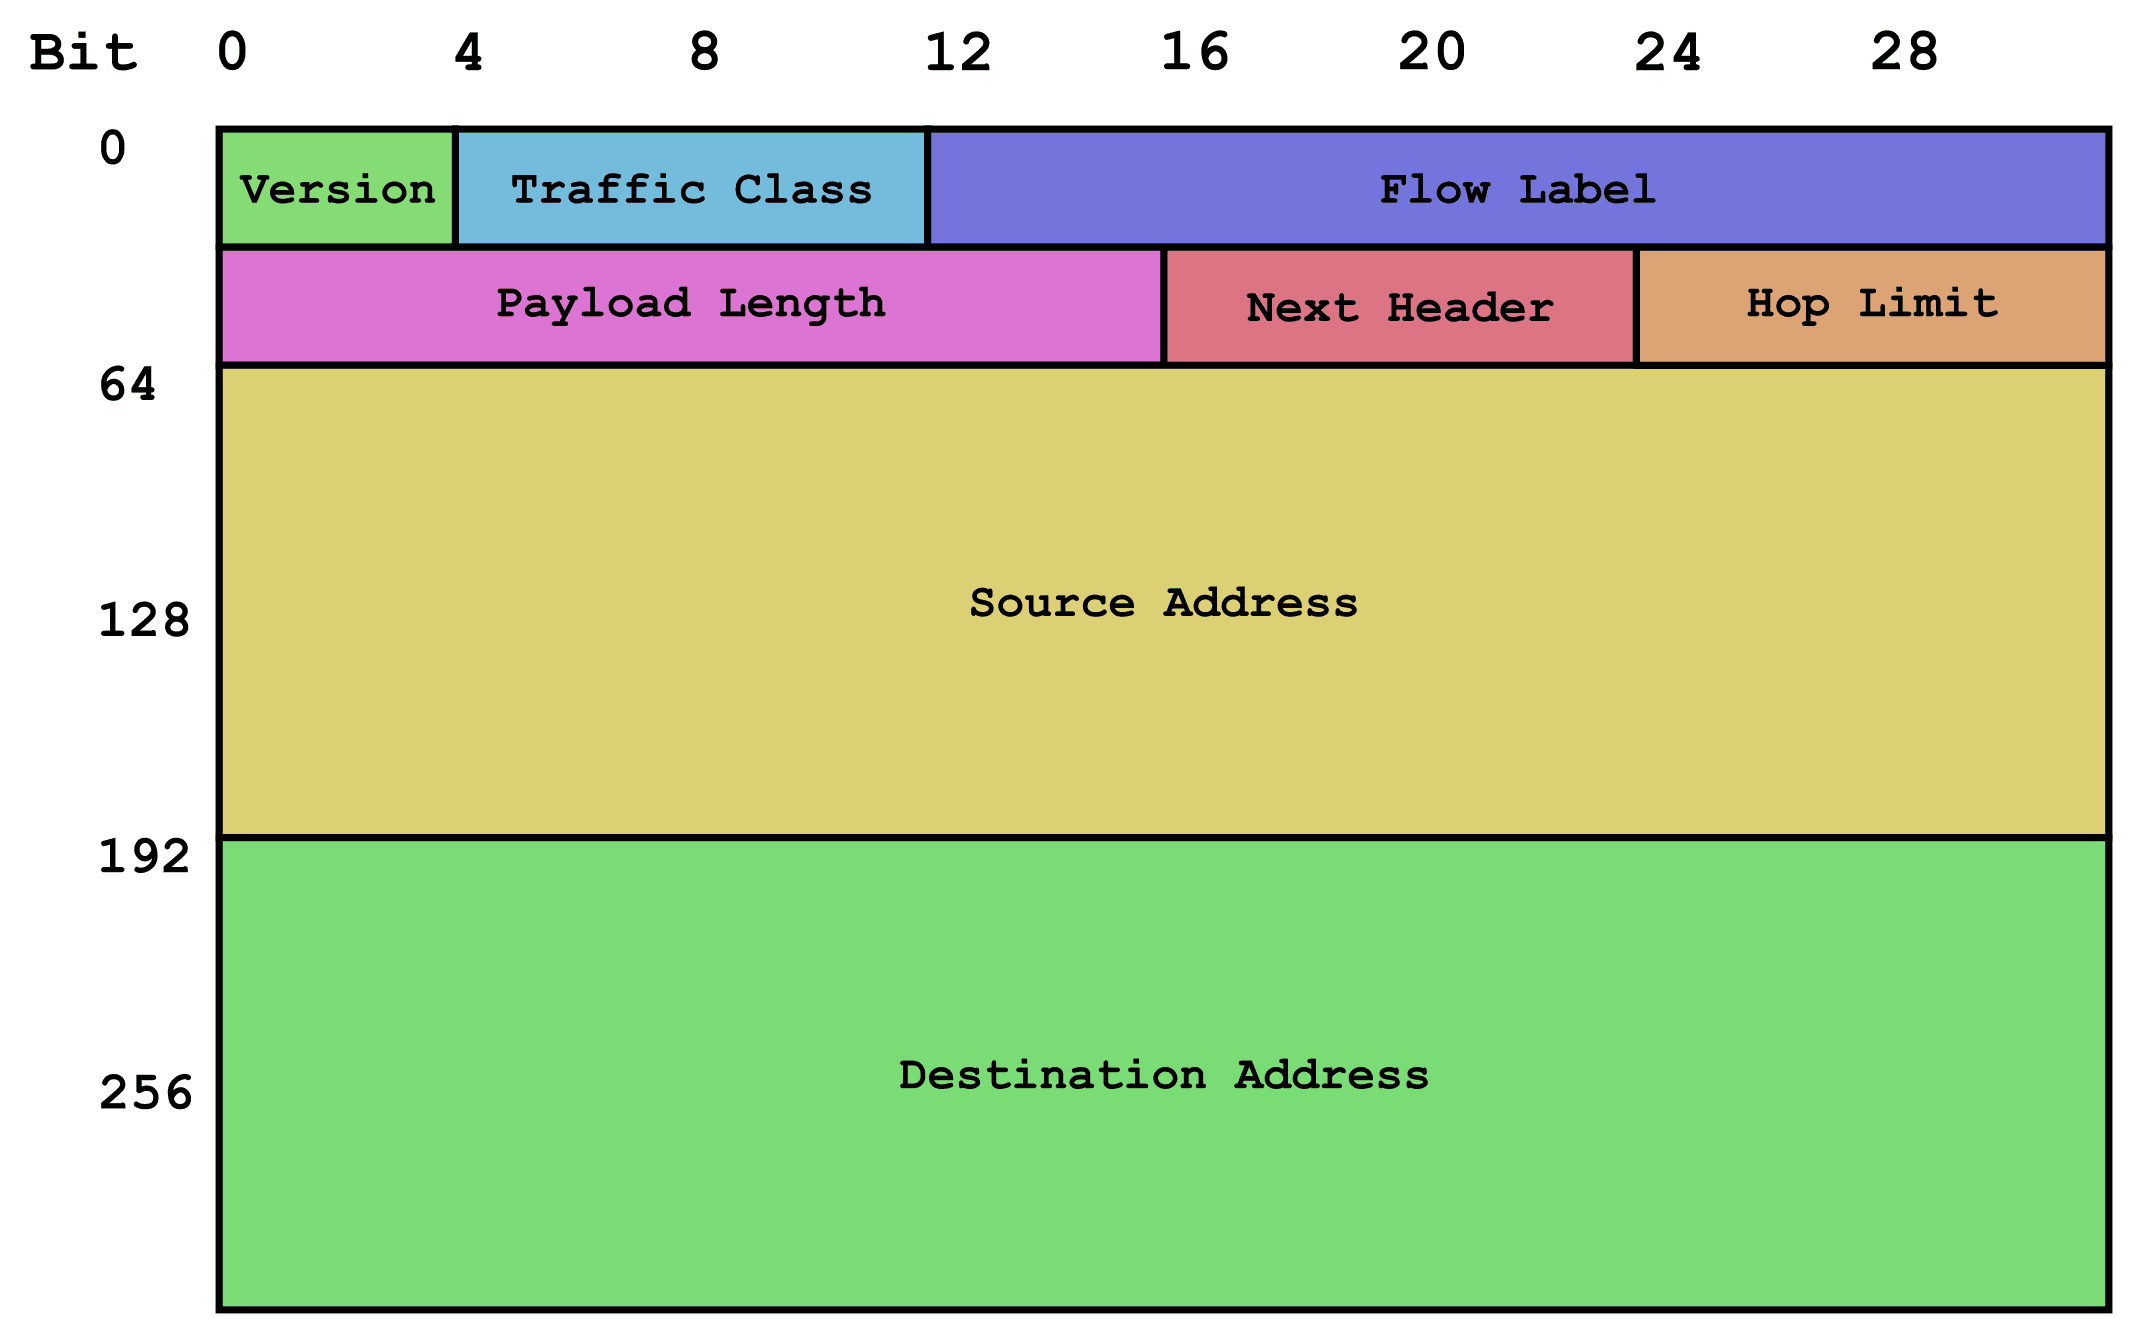 ipv6 ware header contend for resolution